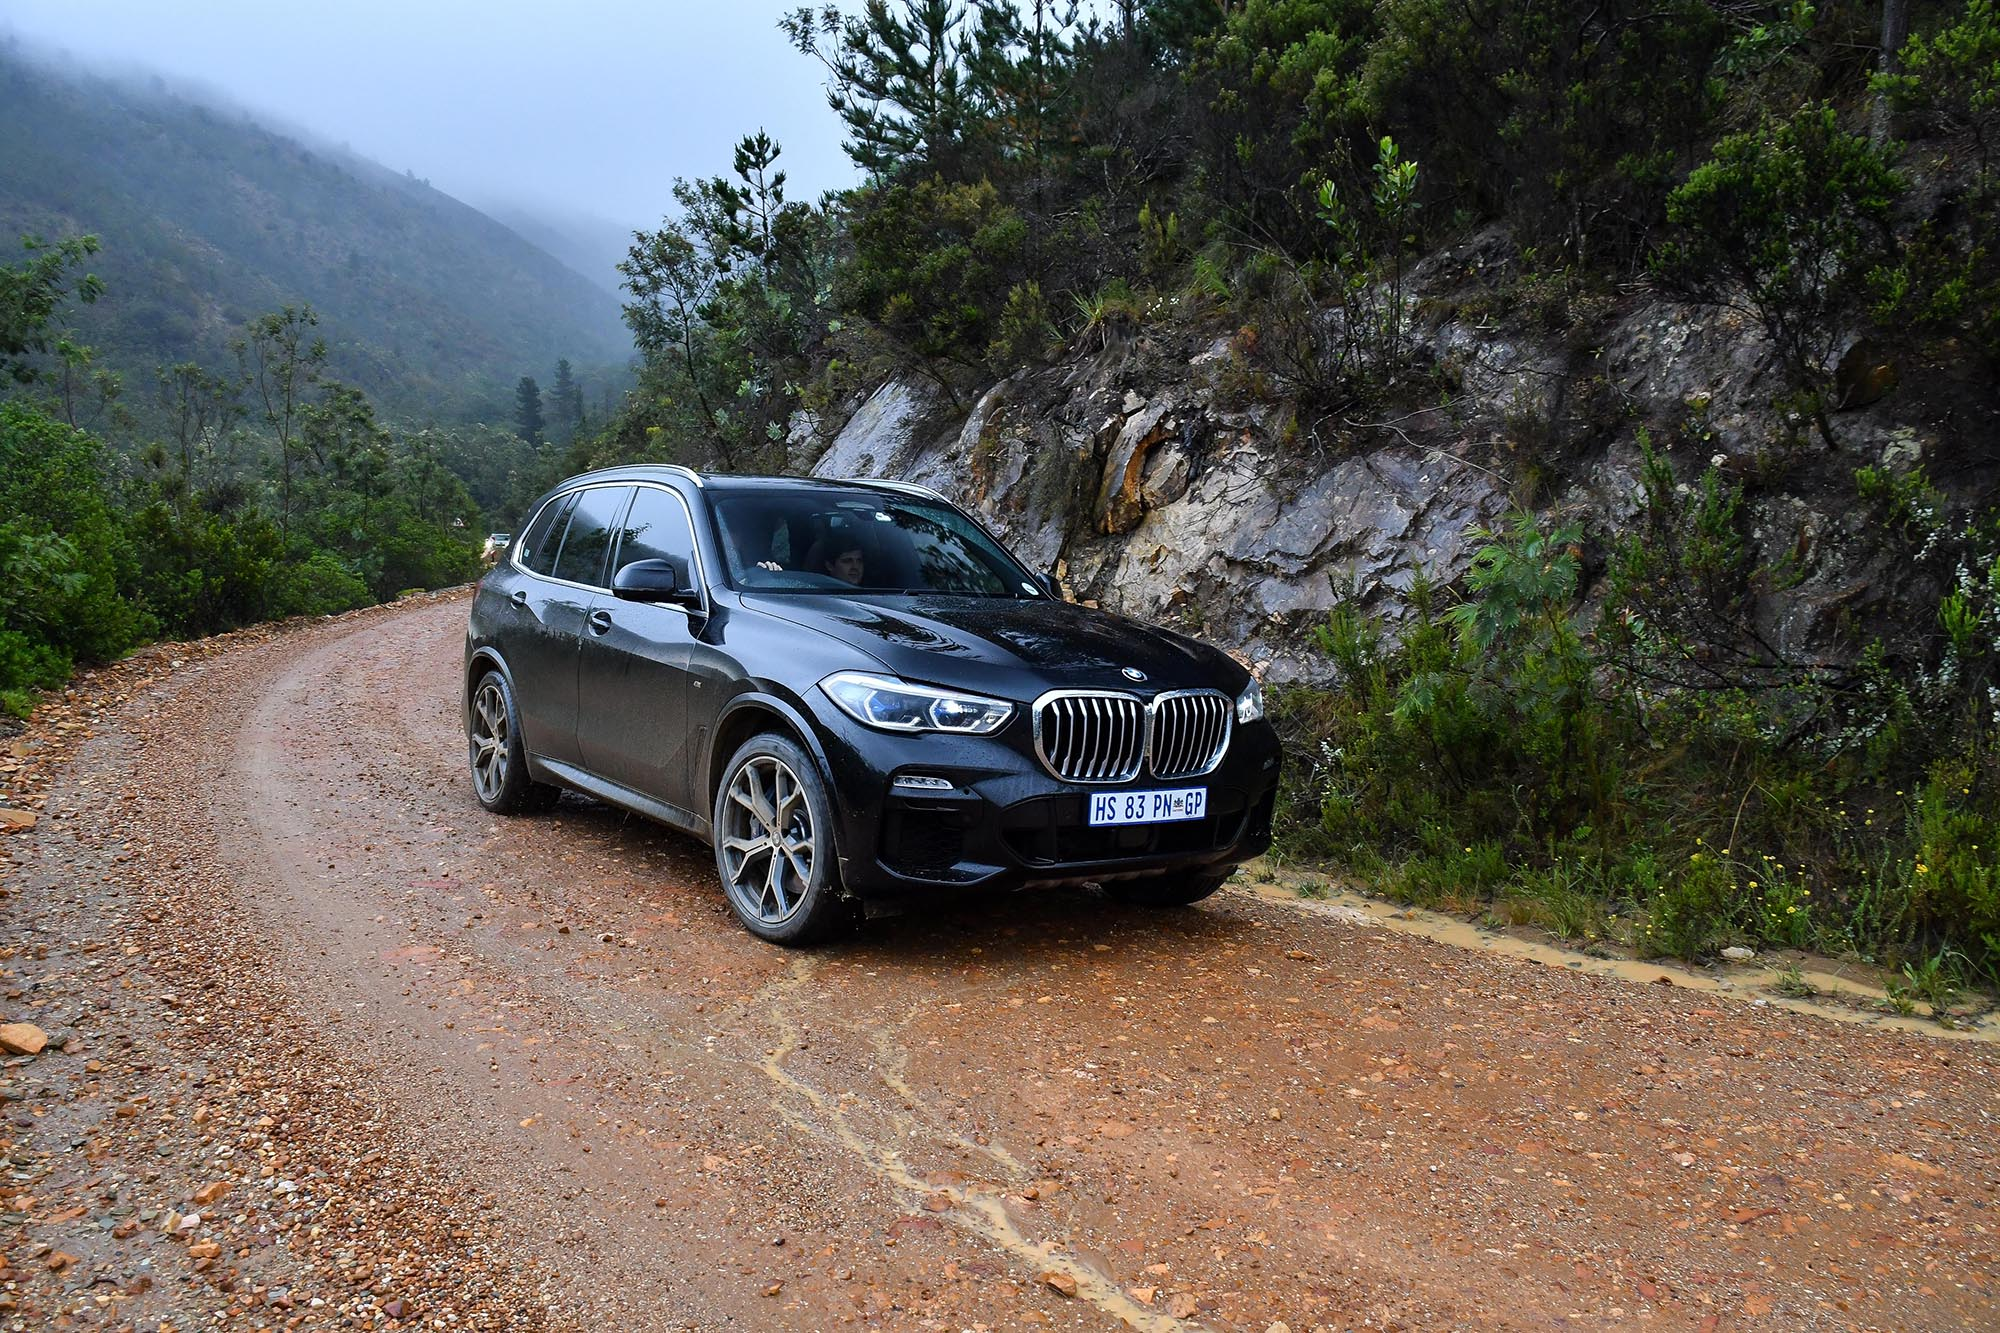 bmw x5 xdrive30d off road luxury off the beaten track. Black Bedroom Furniture Sets. Home Design Ideas